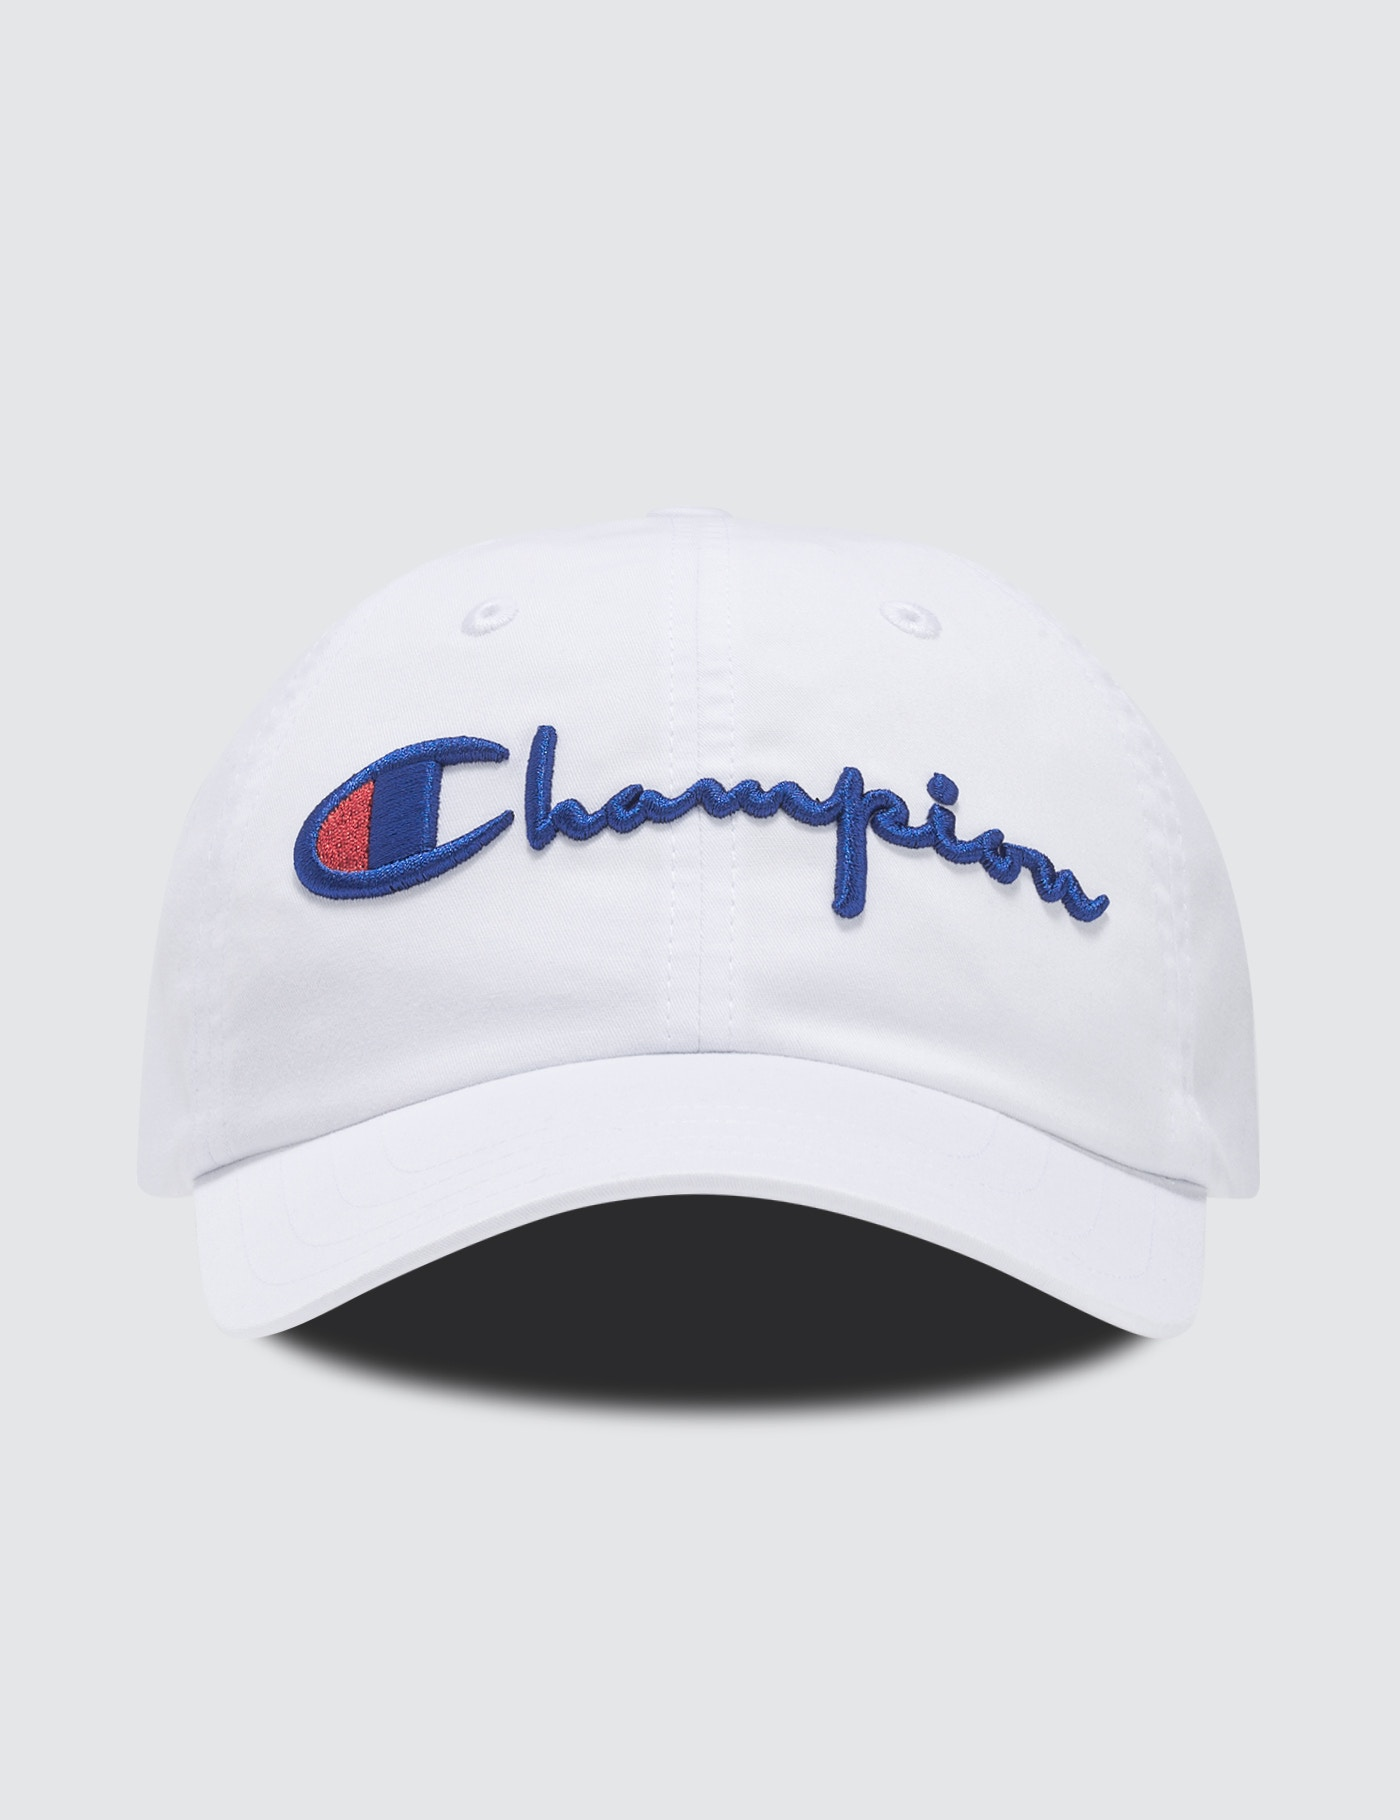 Buy Original Champion Reverse Weave Scrip Logo Sport Cap at ... f74a441ea4c